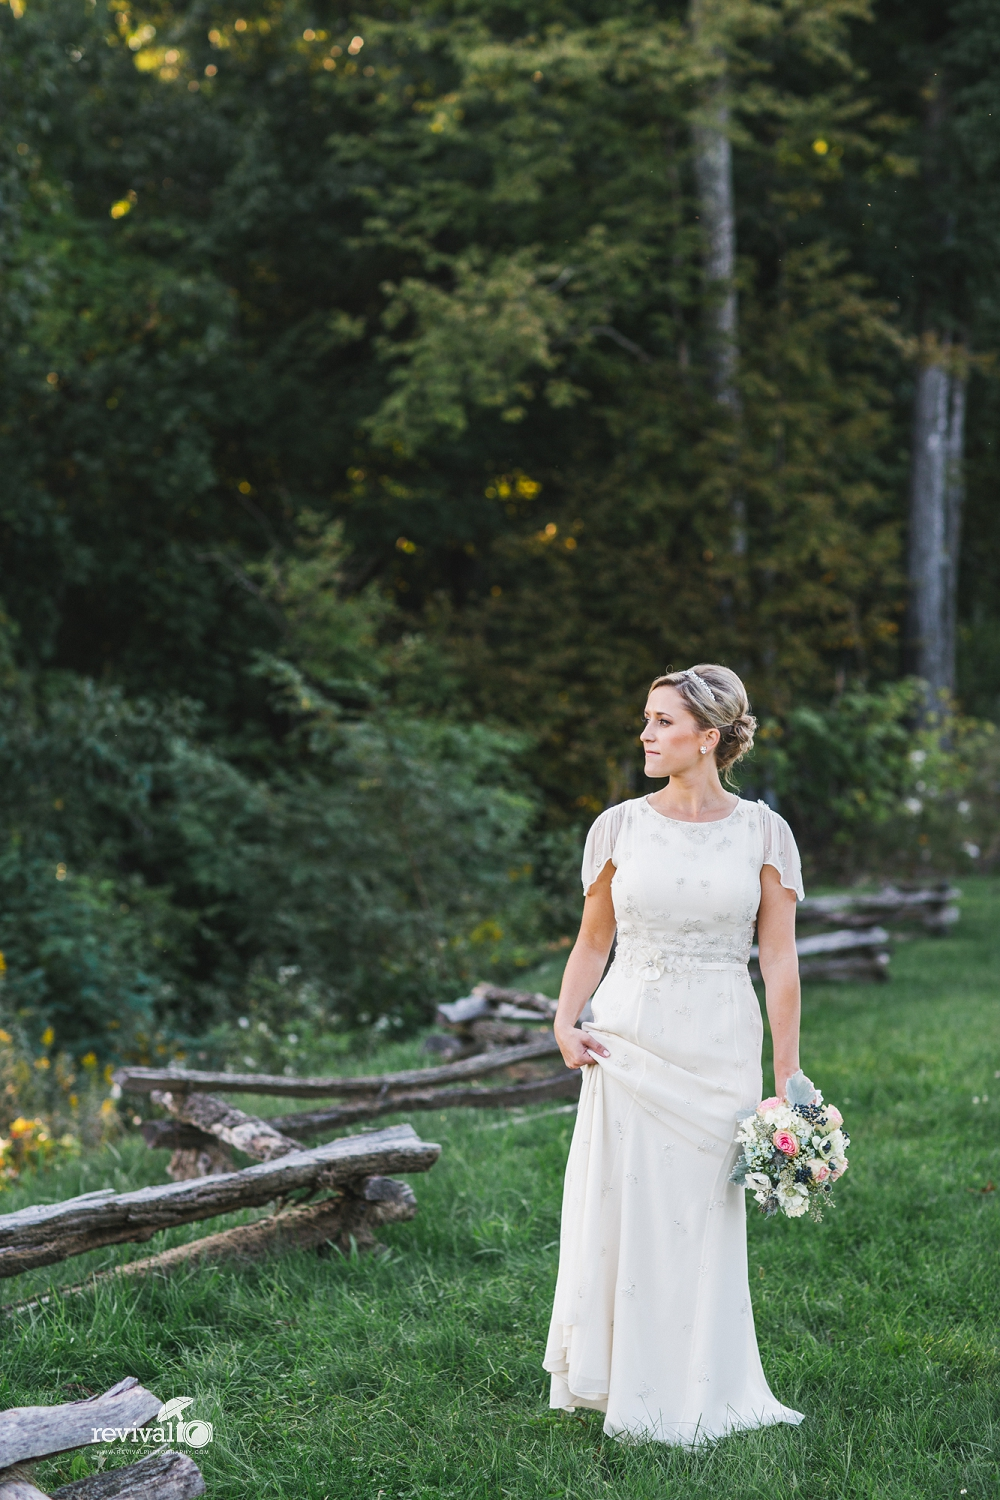 5 Wedding Dress Tips (finding a dress that is both lovely AND comfortable)